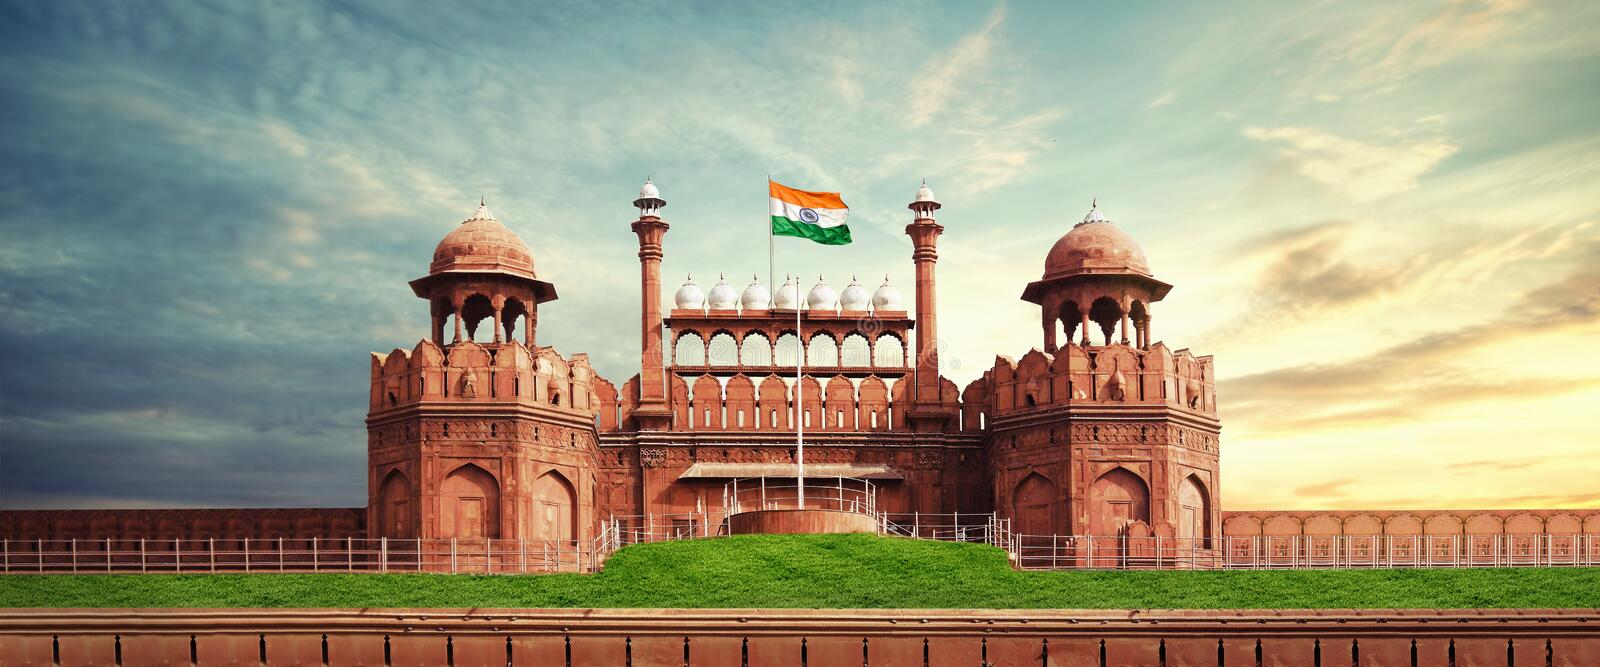 Red Fort delhi india. Red Fort is a historic fort in the city of Delhi in India. It was the main residence of the emperors of the Mughal dynasty for nearly 200 stock image